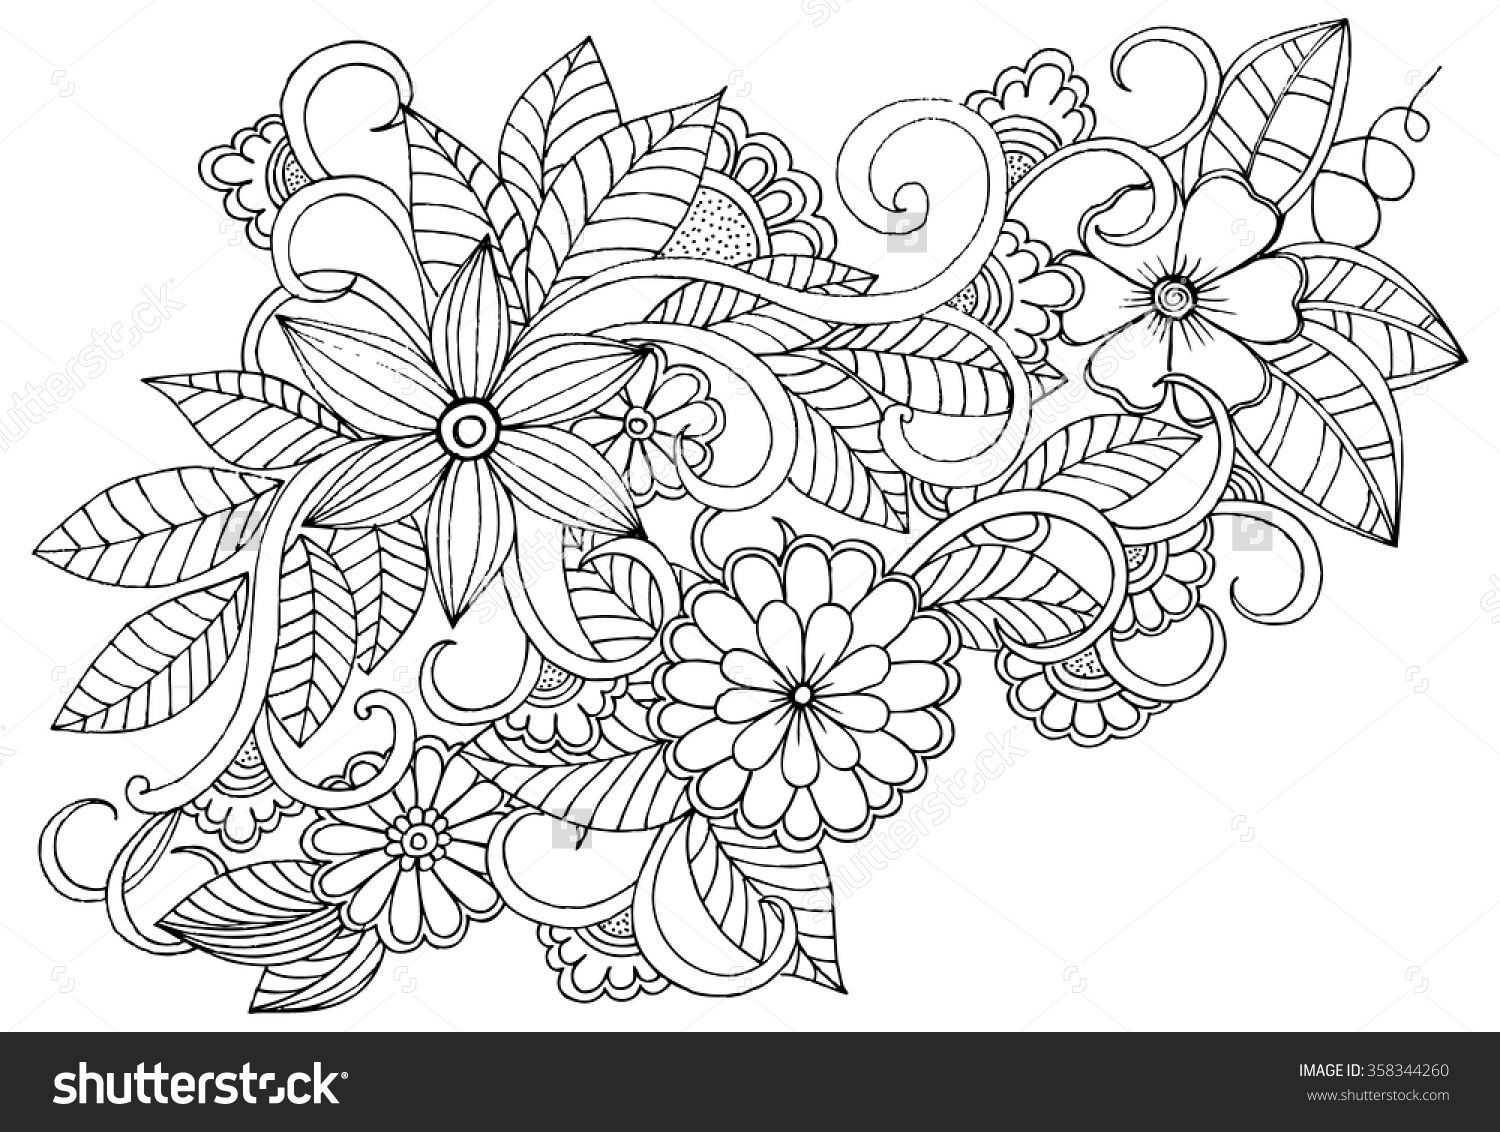 doodle floral pattern in black and white page for